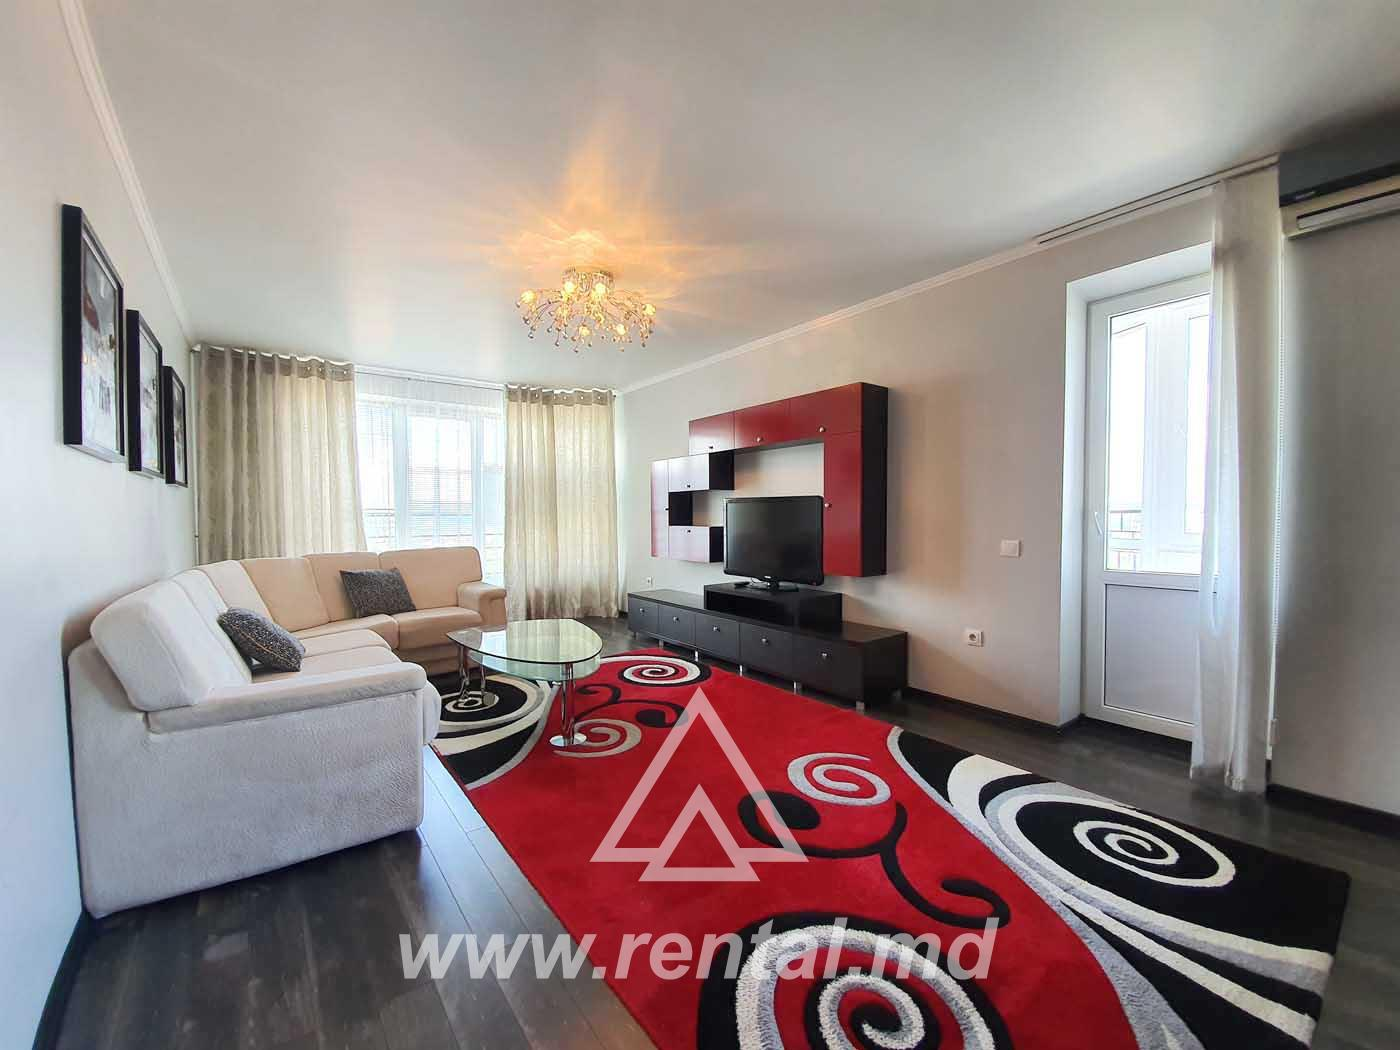 Apartment for rent in a new building in Chisinau center